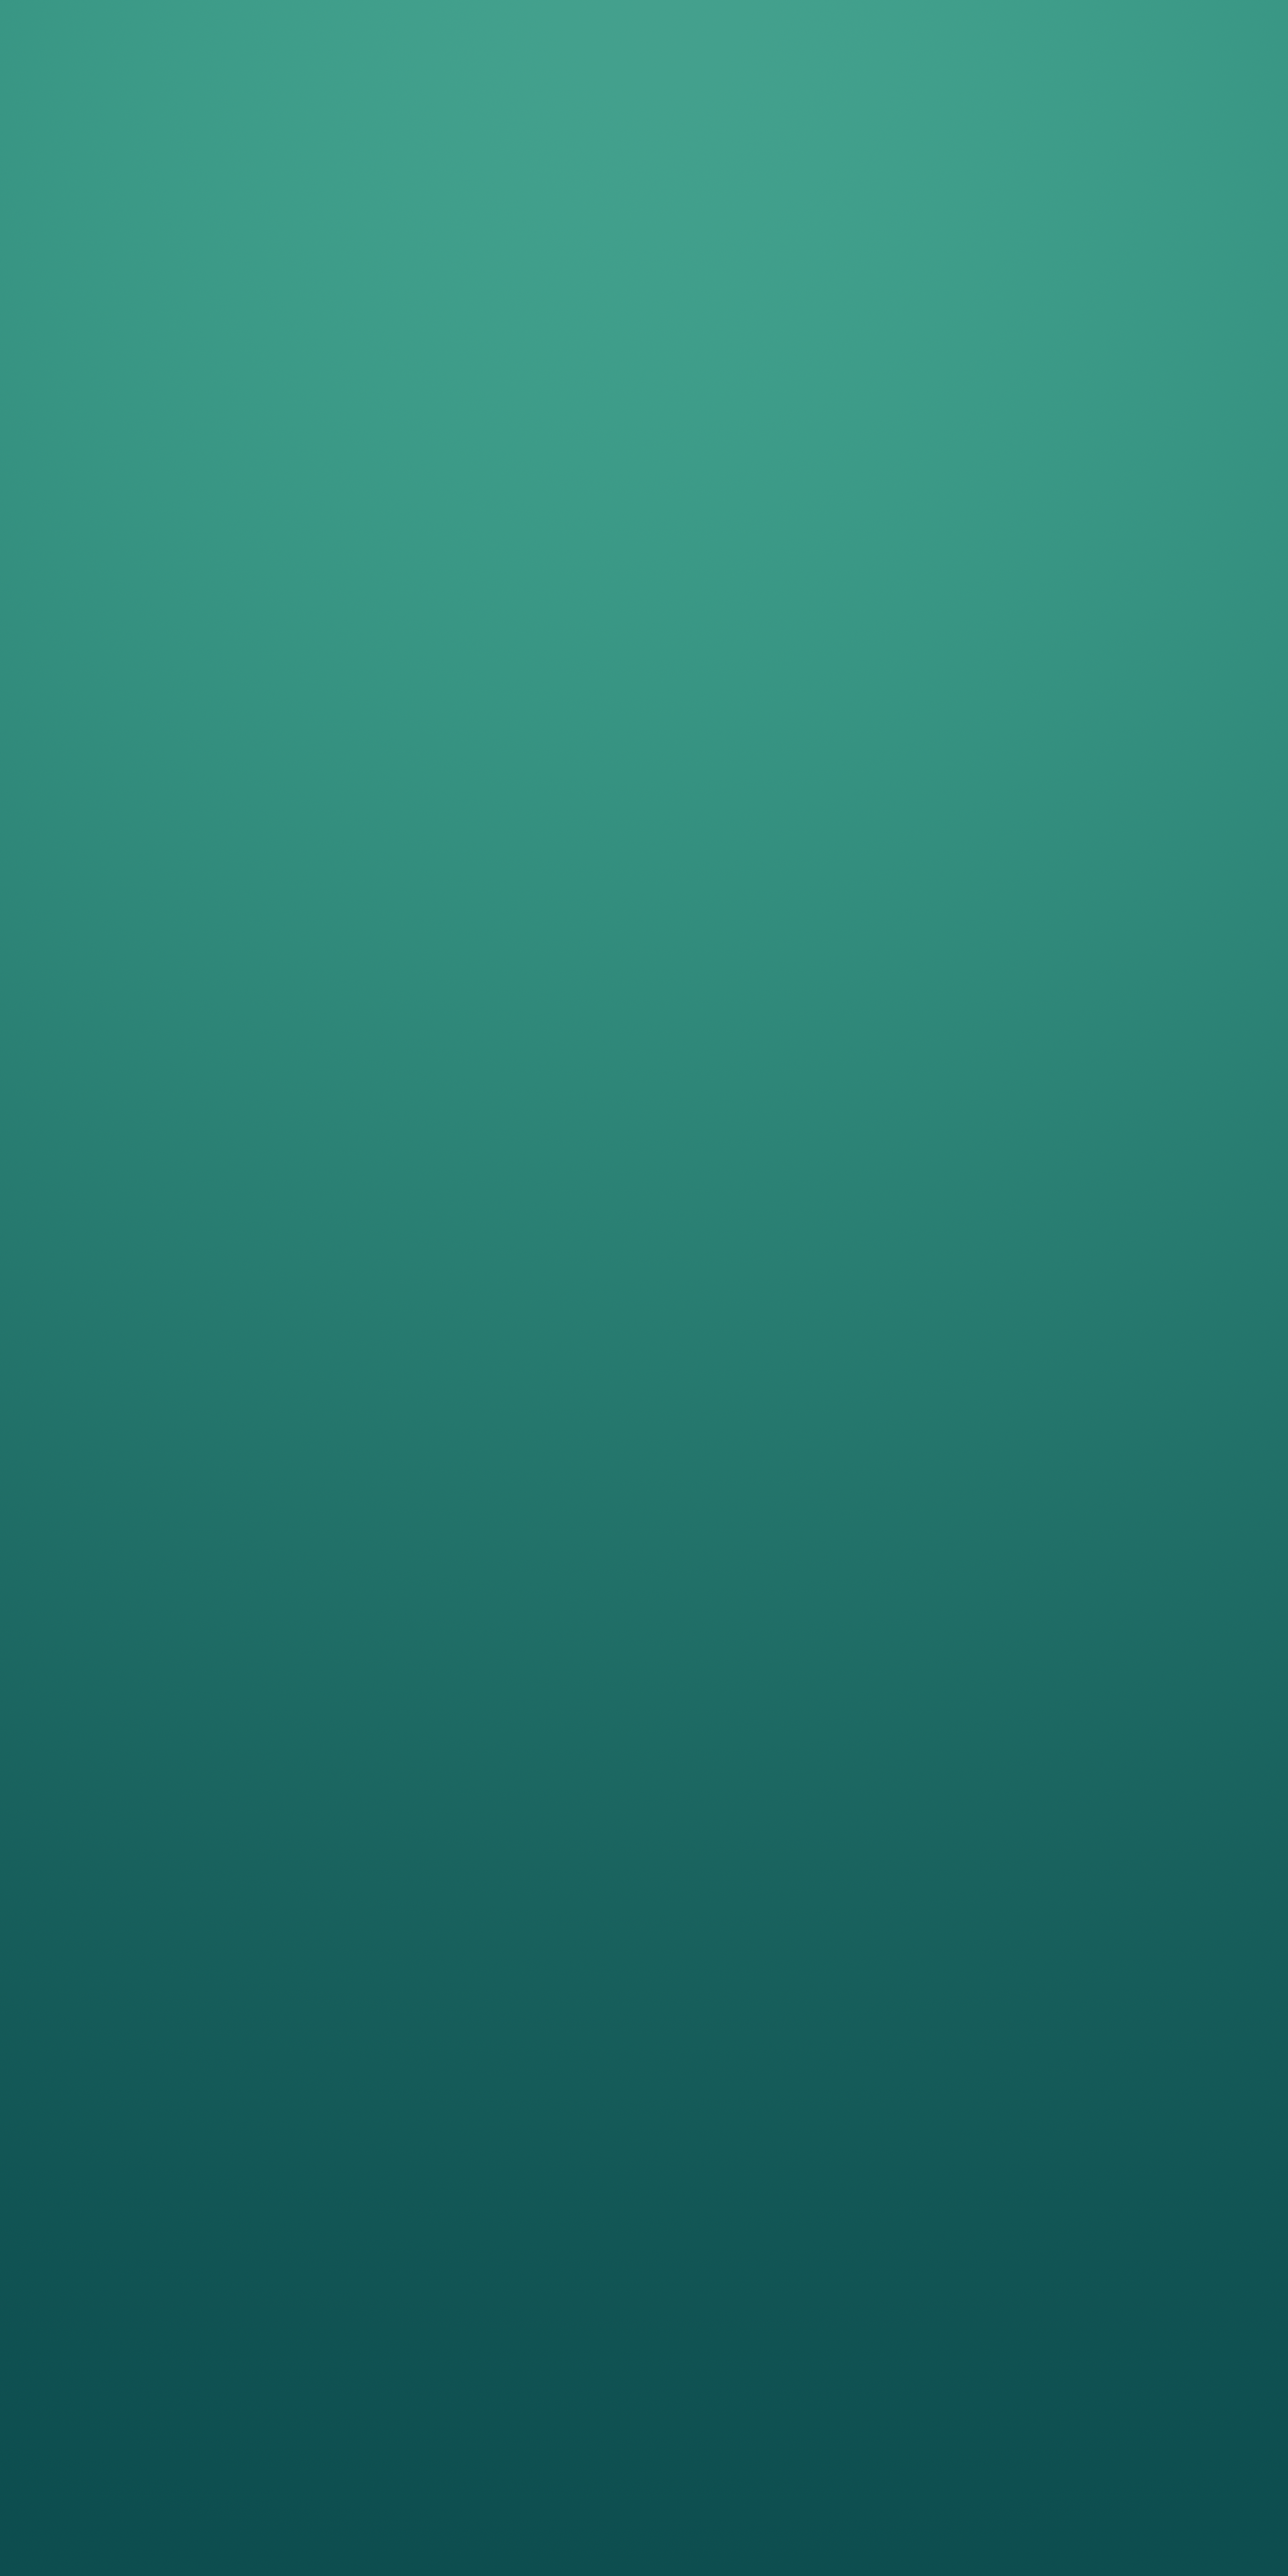 A Selection Of Gradient Wallpapers For Iphone Geek Tech Online